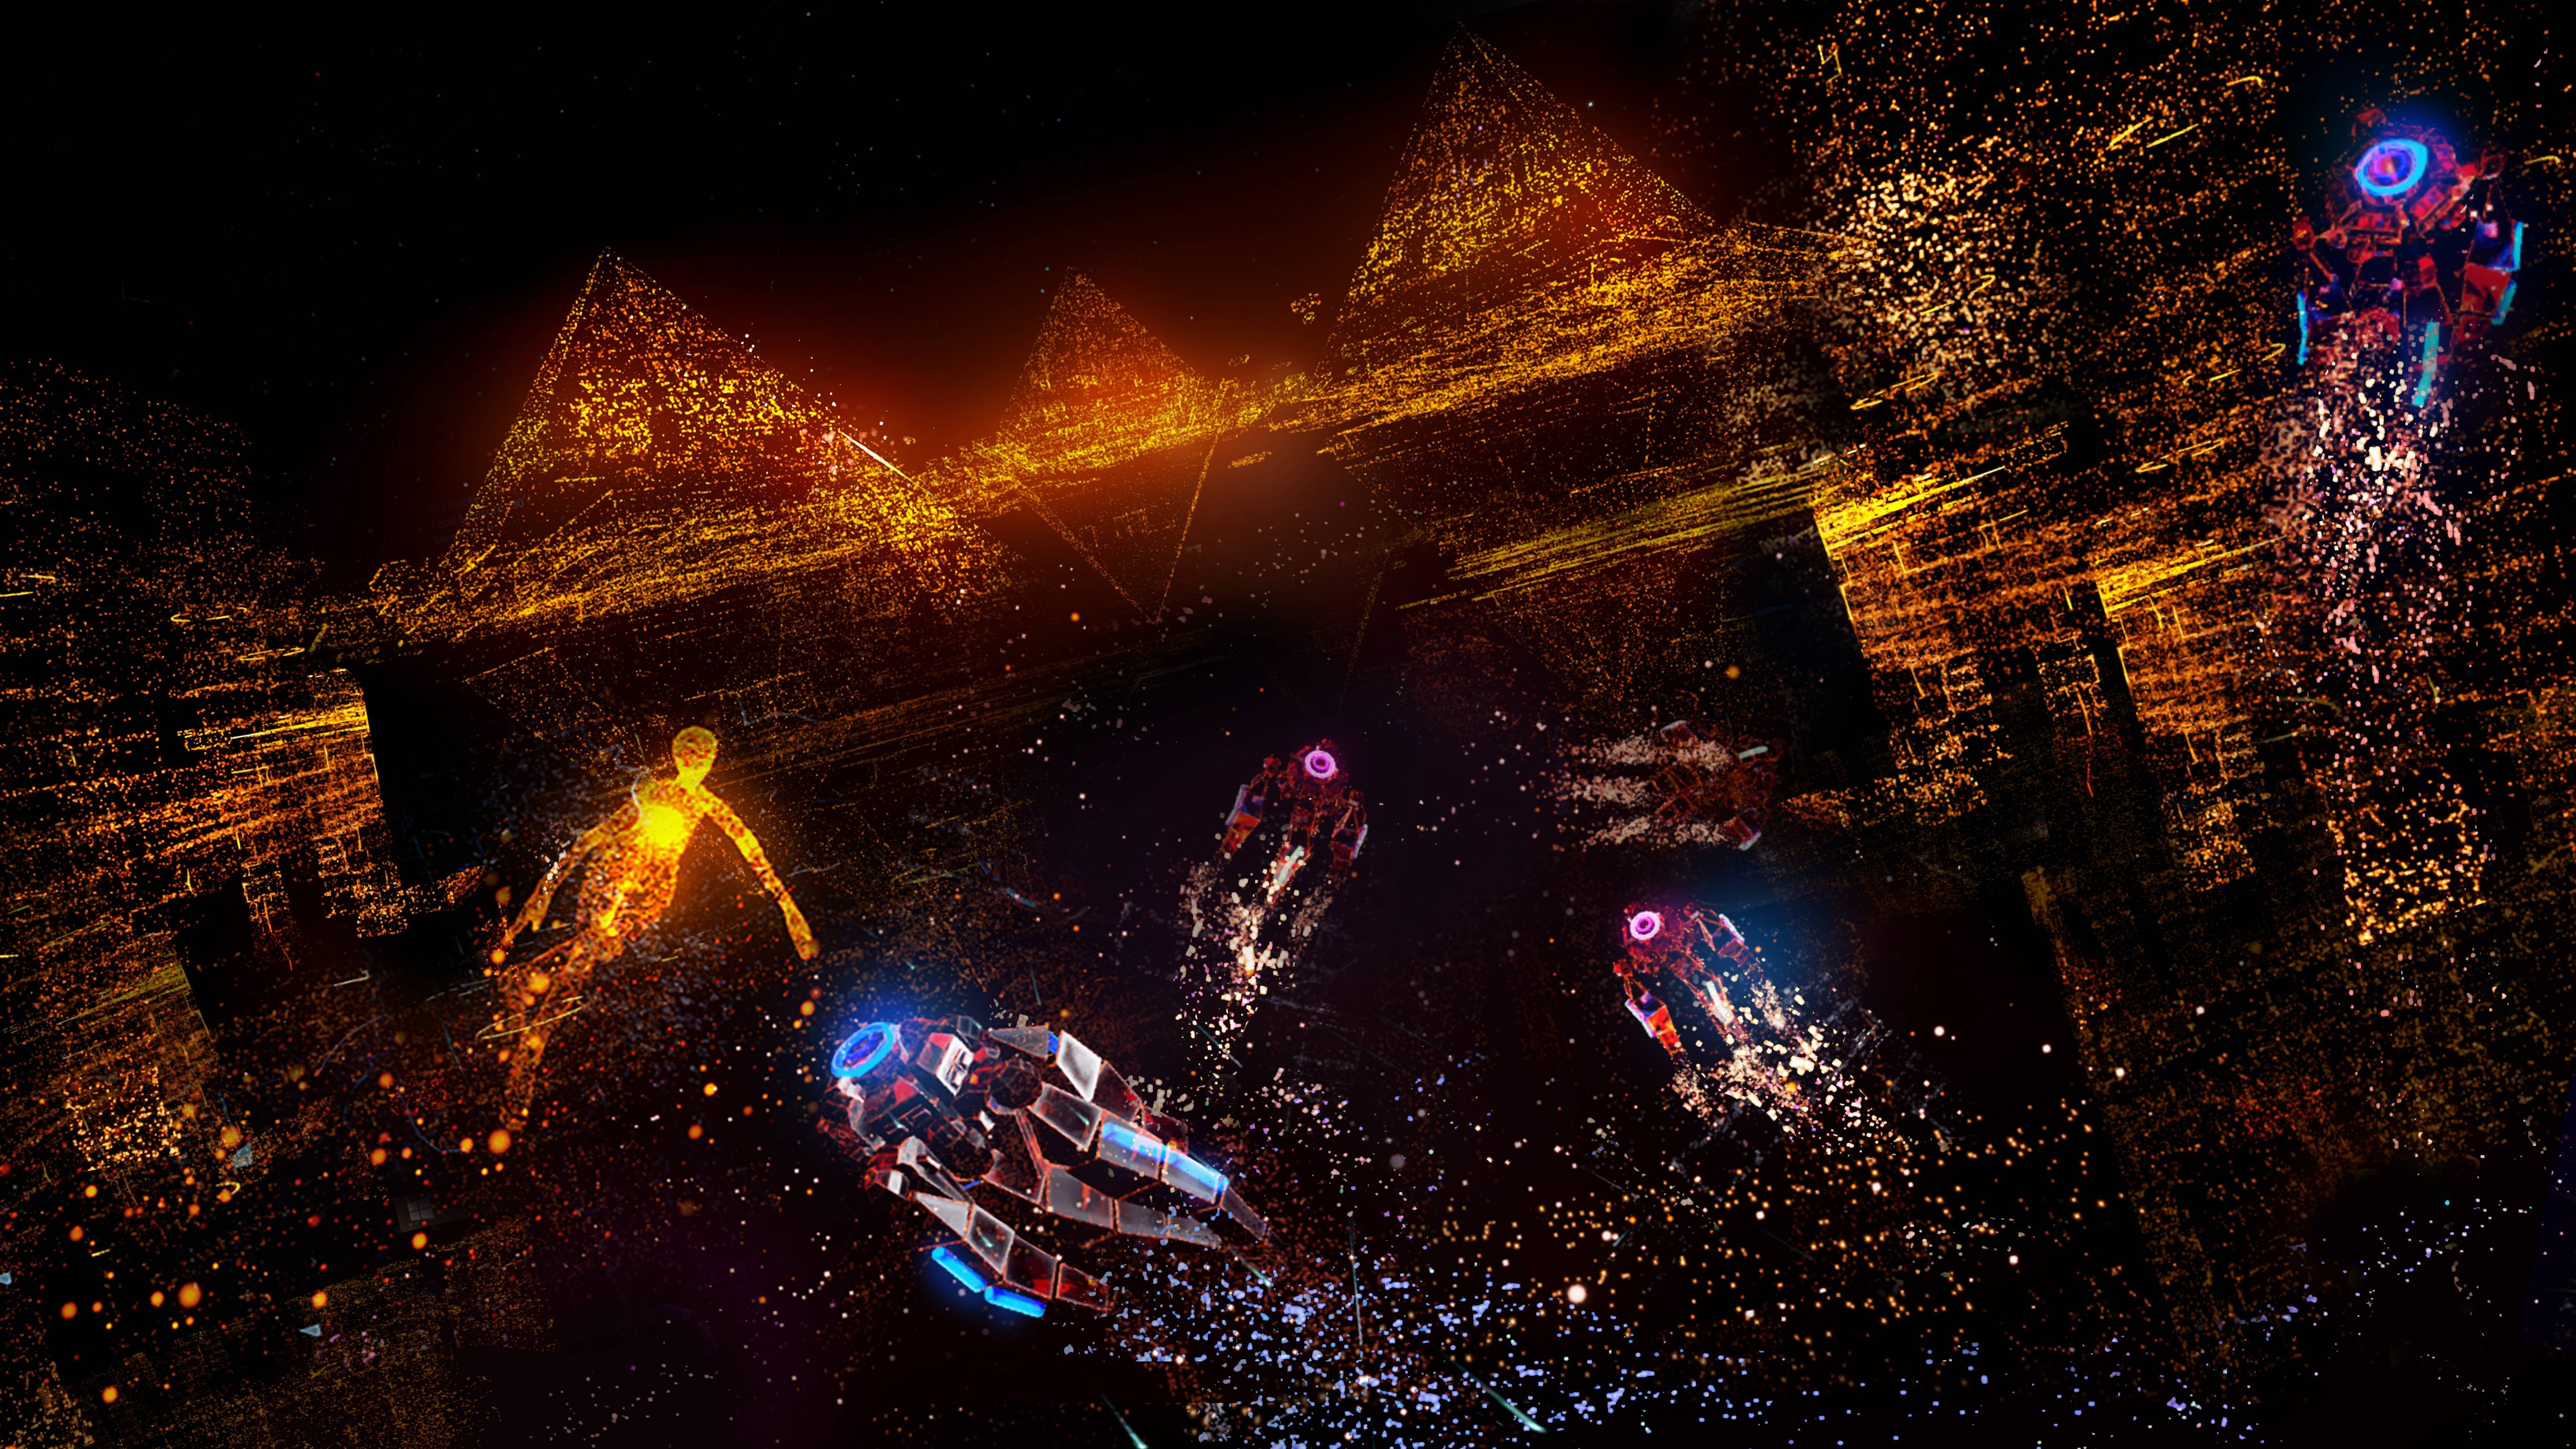 Wallpaper Rez Infinite Area X VR PS PS4 Games 12405